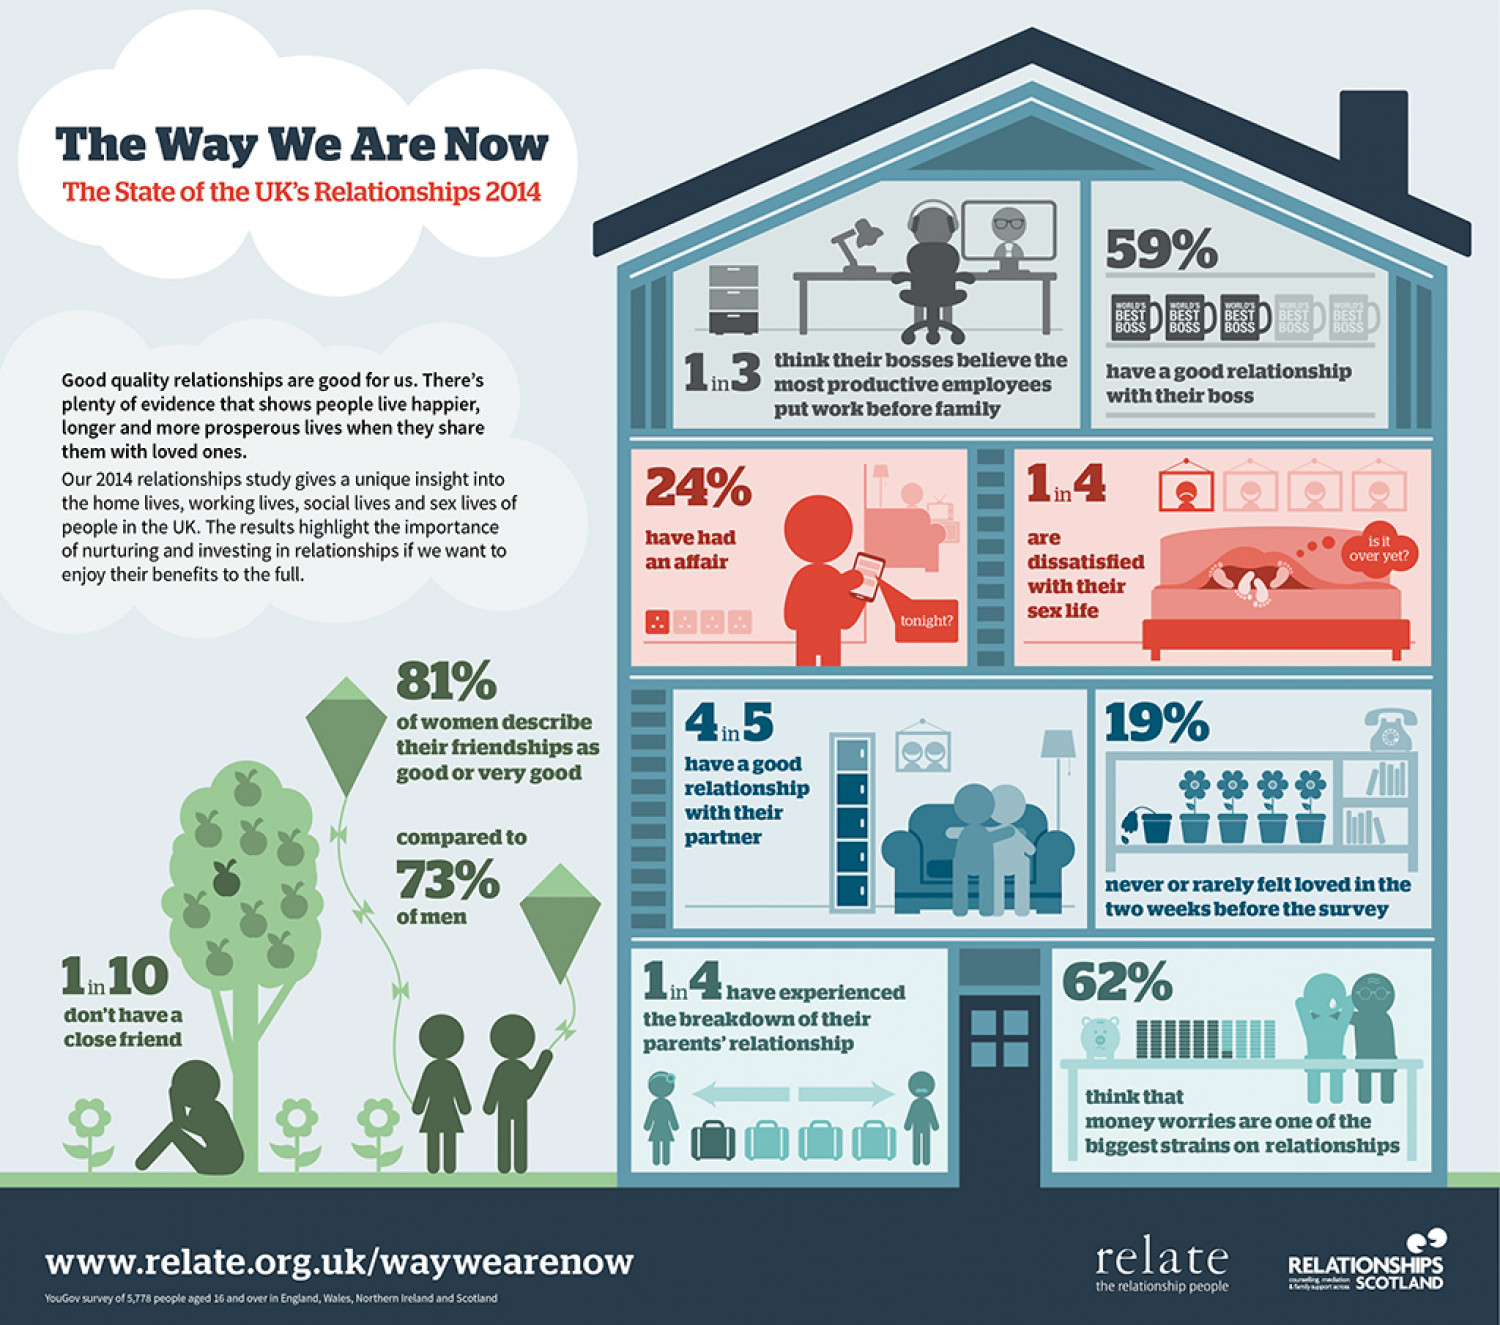 The State of the UK's Relationships 2014 - The Way We Are Now Infographic